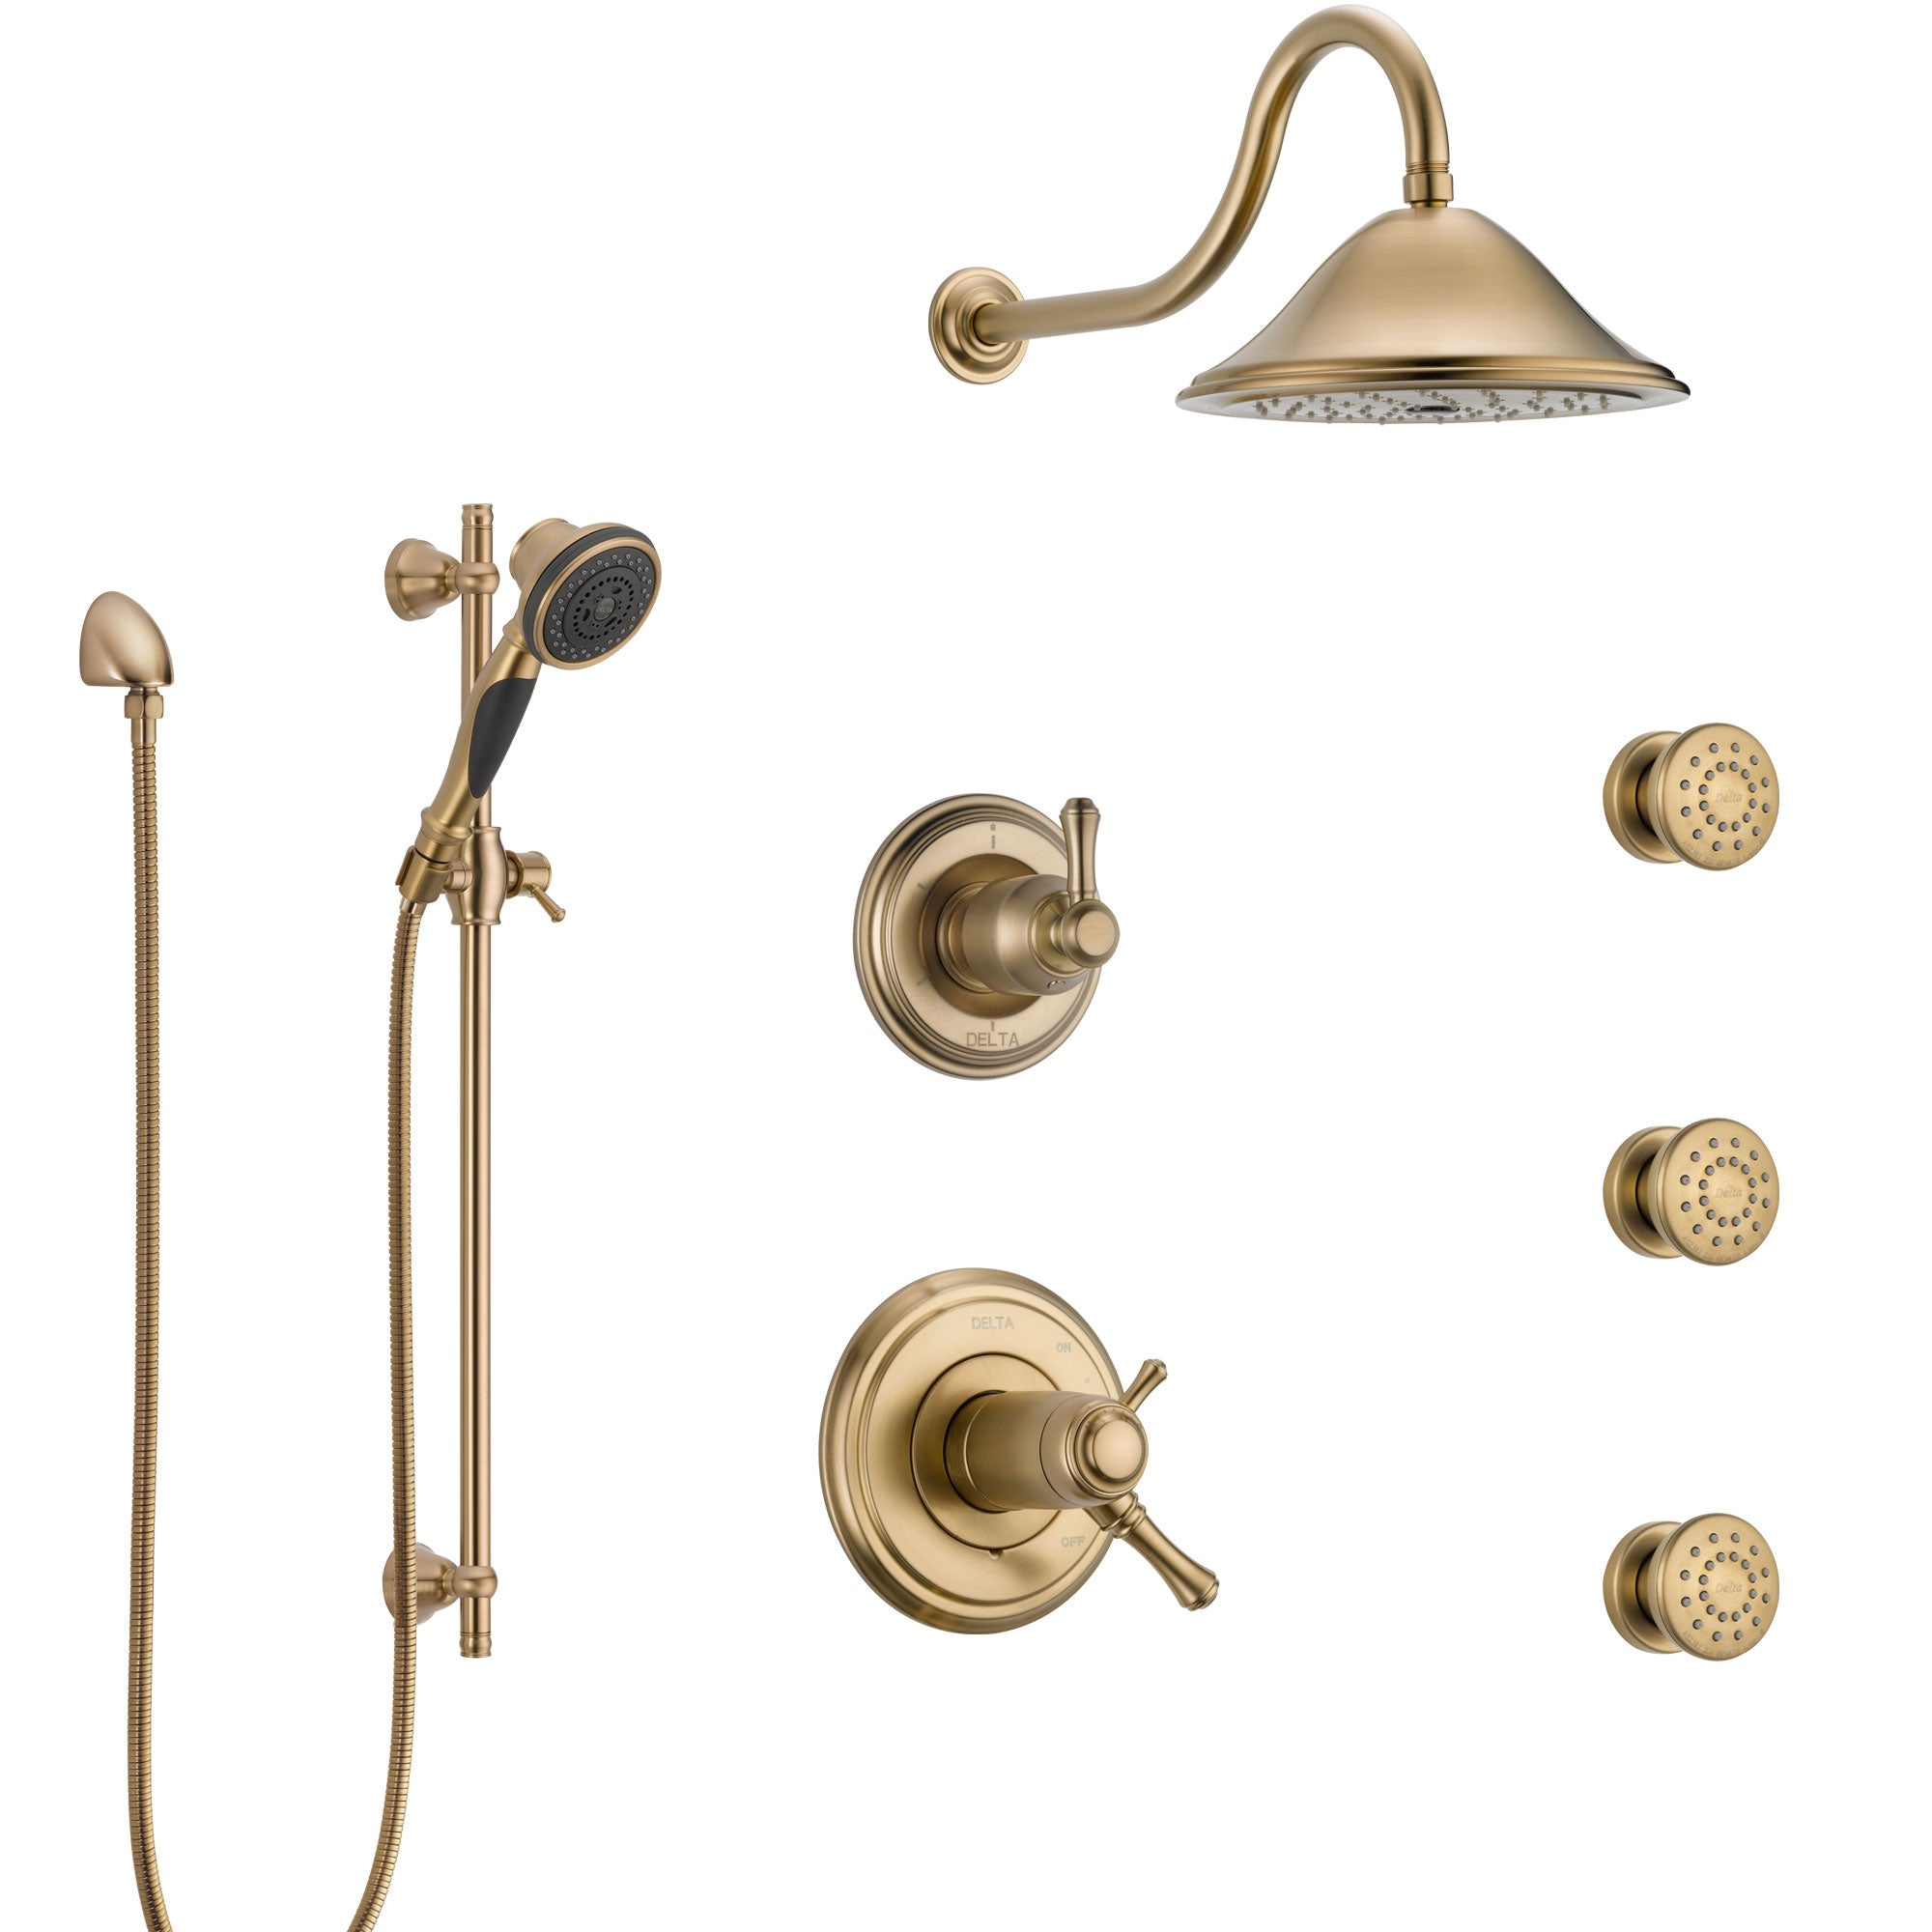 Delta Cassidy Champagne Bronze Shower System with Dual Thermostatic Control, Diverter, Showerhead, 3 Body Sprays, and Hand Shower SS17T2972CZ2